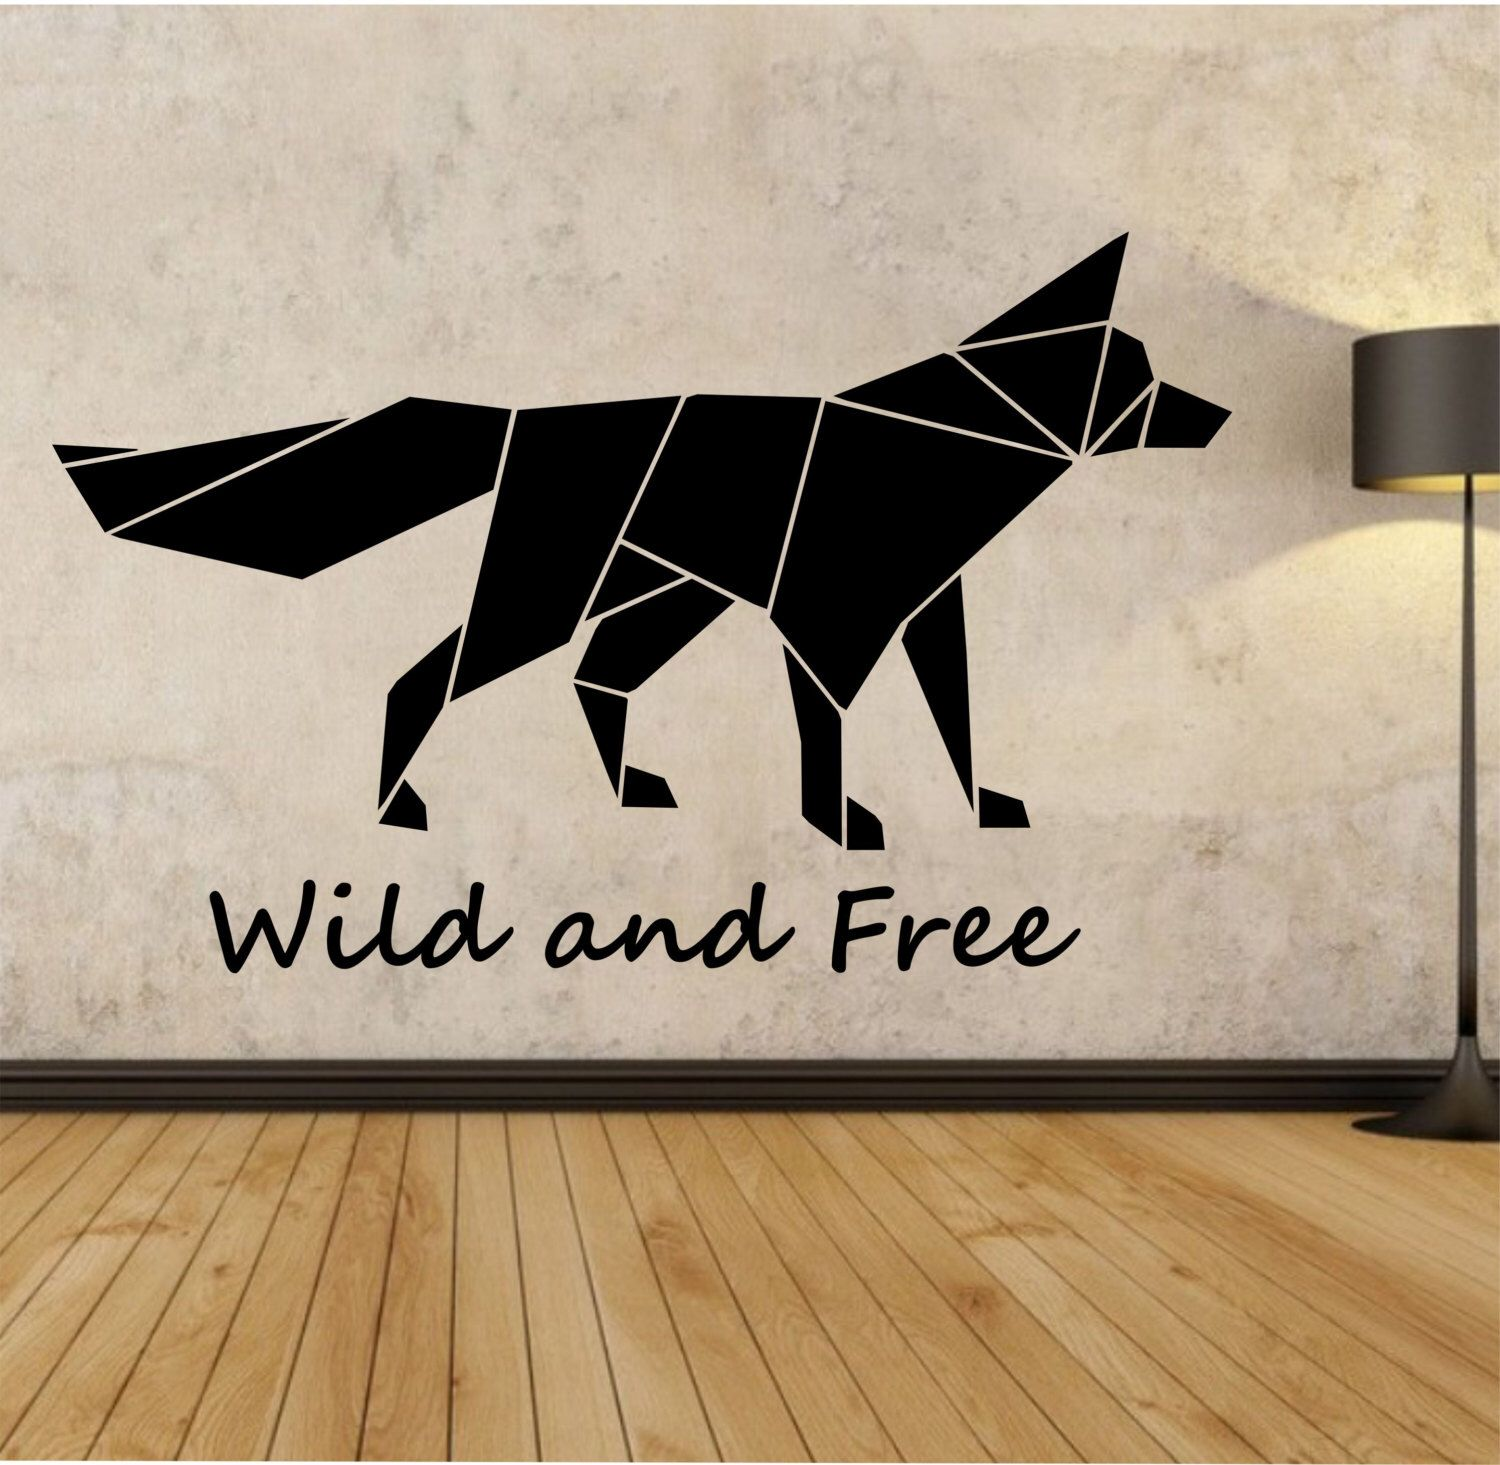 Origami Fox Wall Decal Wild and Free quote Sticker Art Decor Bedroom ...